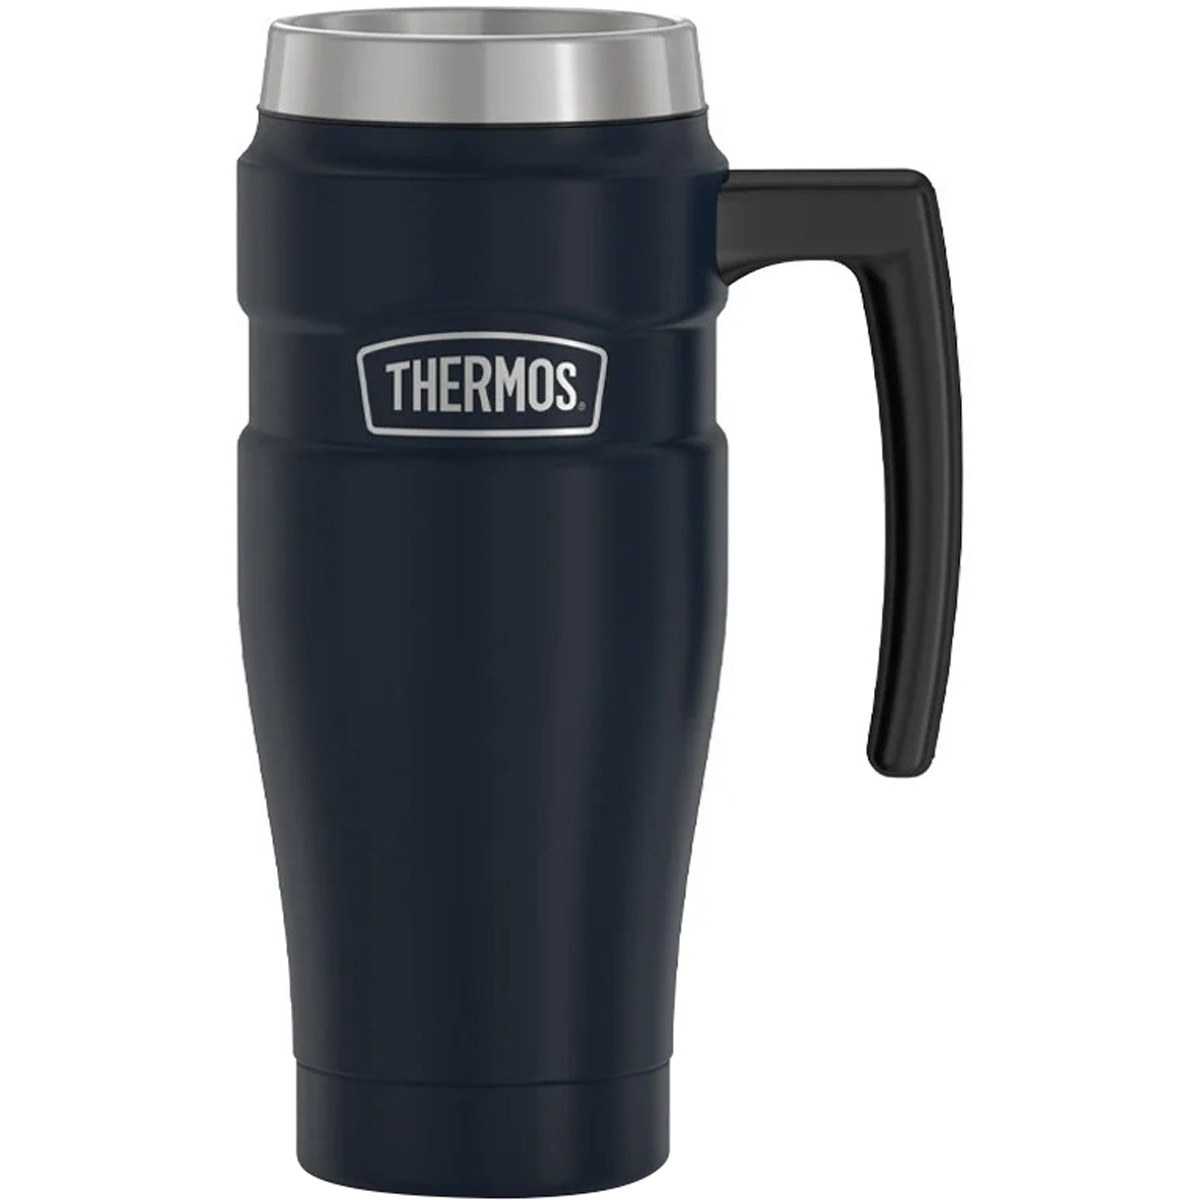 thumbnail 19 - Thermos 16 oz. Stainless King Insulated Stainless Steel Travel Mug with Handle